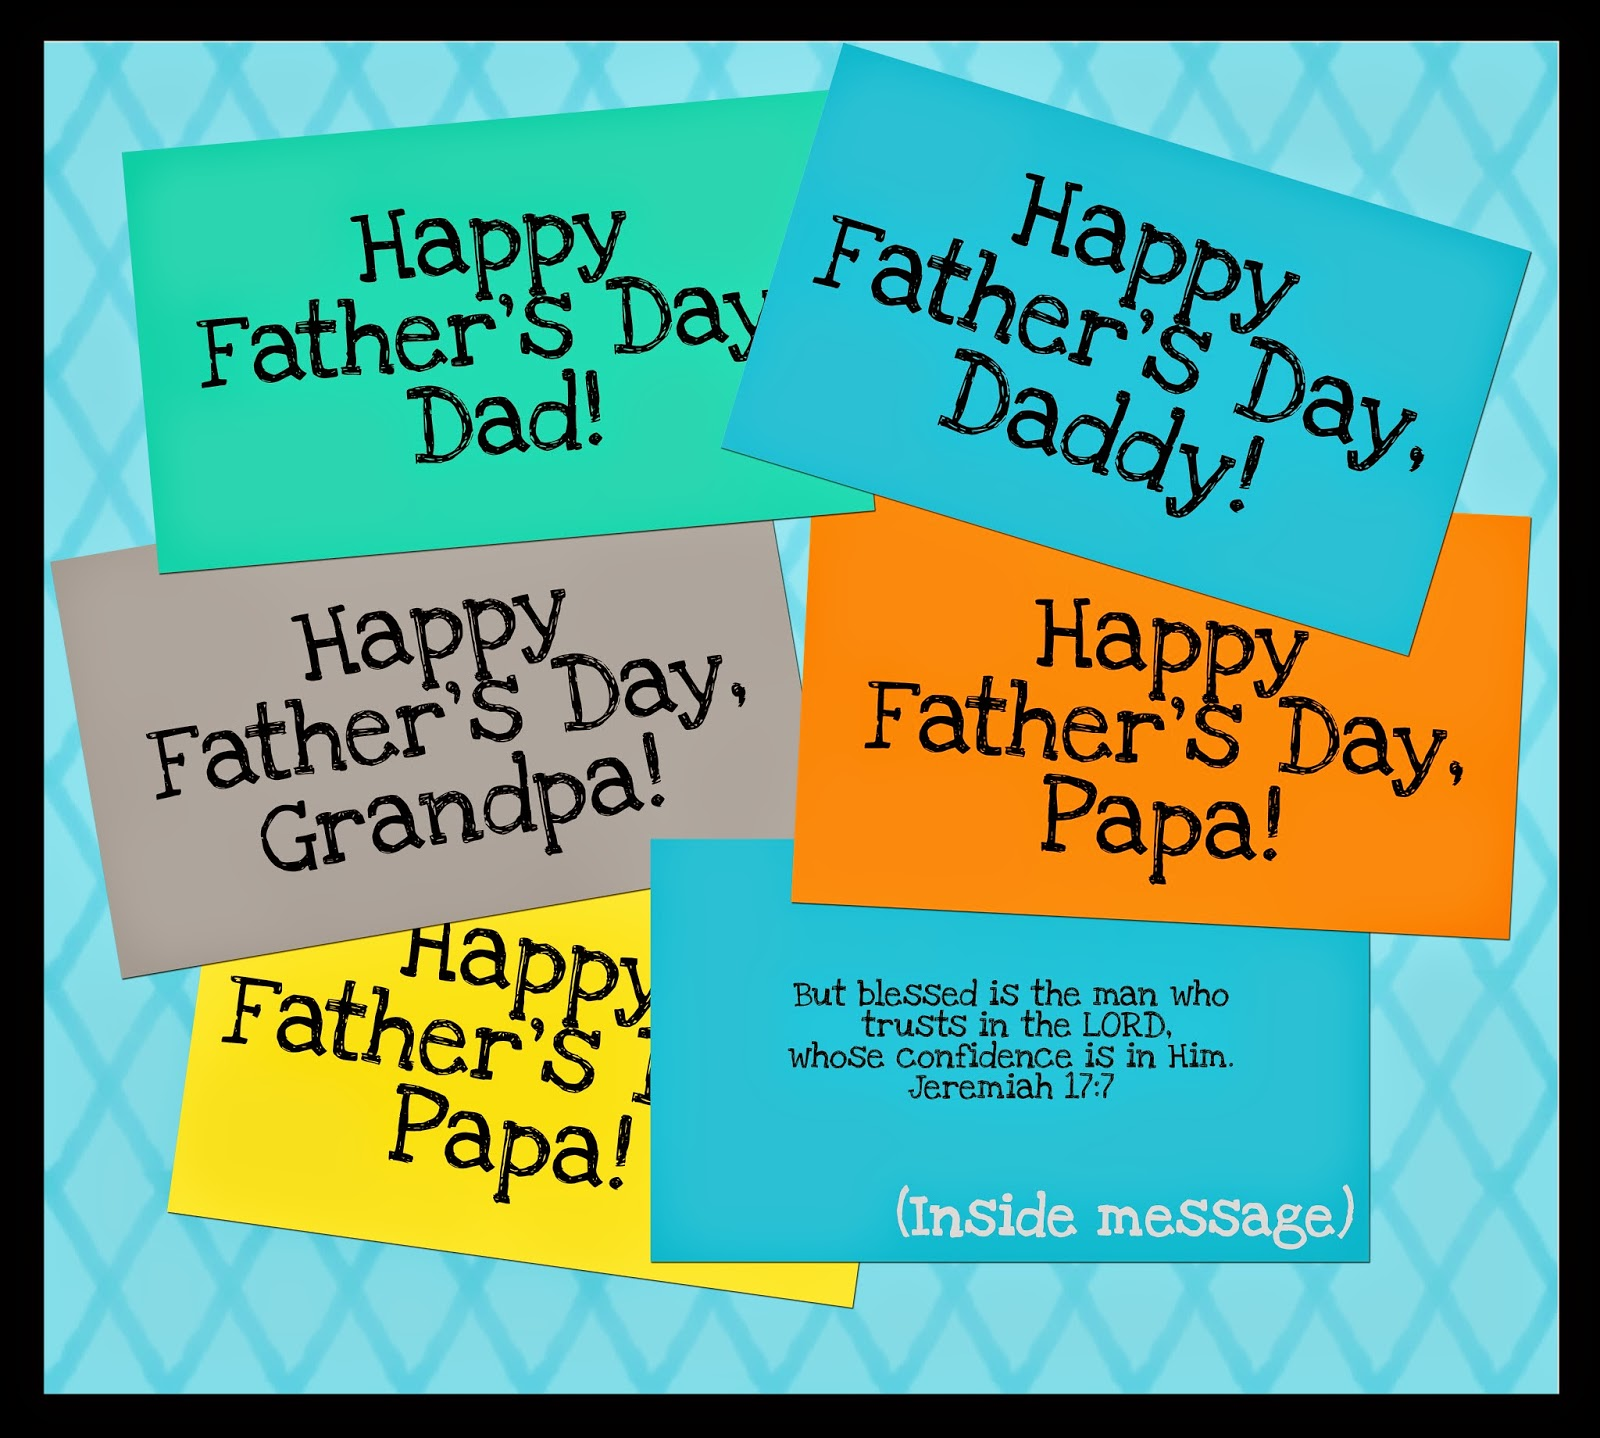 photo regarding All About My Papa Printable named Versus the Carriage Room: Very simple Fathers Working day Card Printable